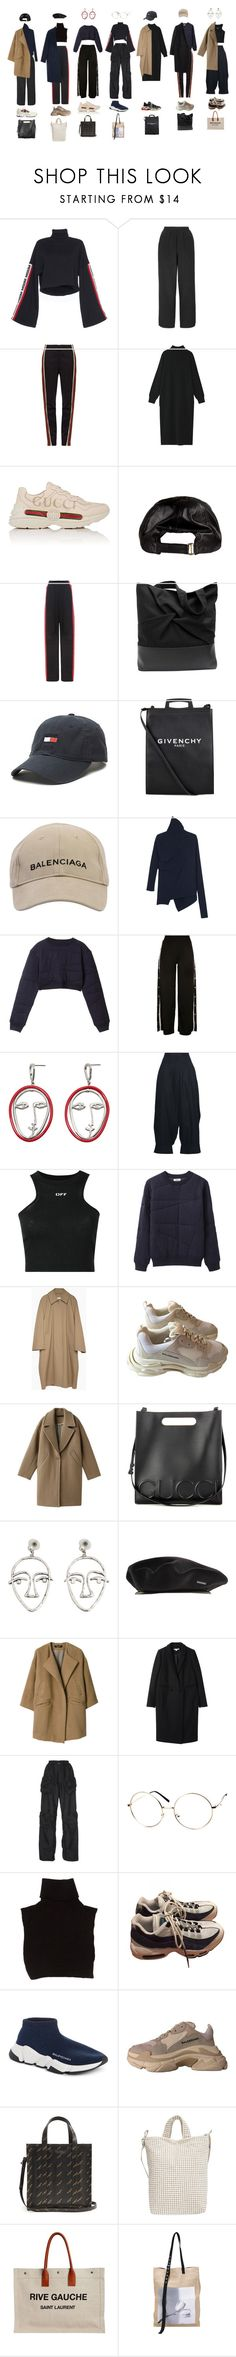 """Untitled #1440"" by jayda-xx ❤ liked on Polyvore featuring Boutique, Balenciaga, Wales Bonner, Gucci, Vetements, Givenchy, Marques'Almeida, Acne Studios, MANGO and Yohji Yamamoto"